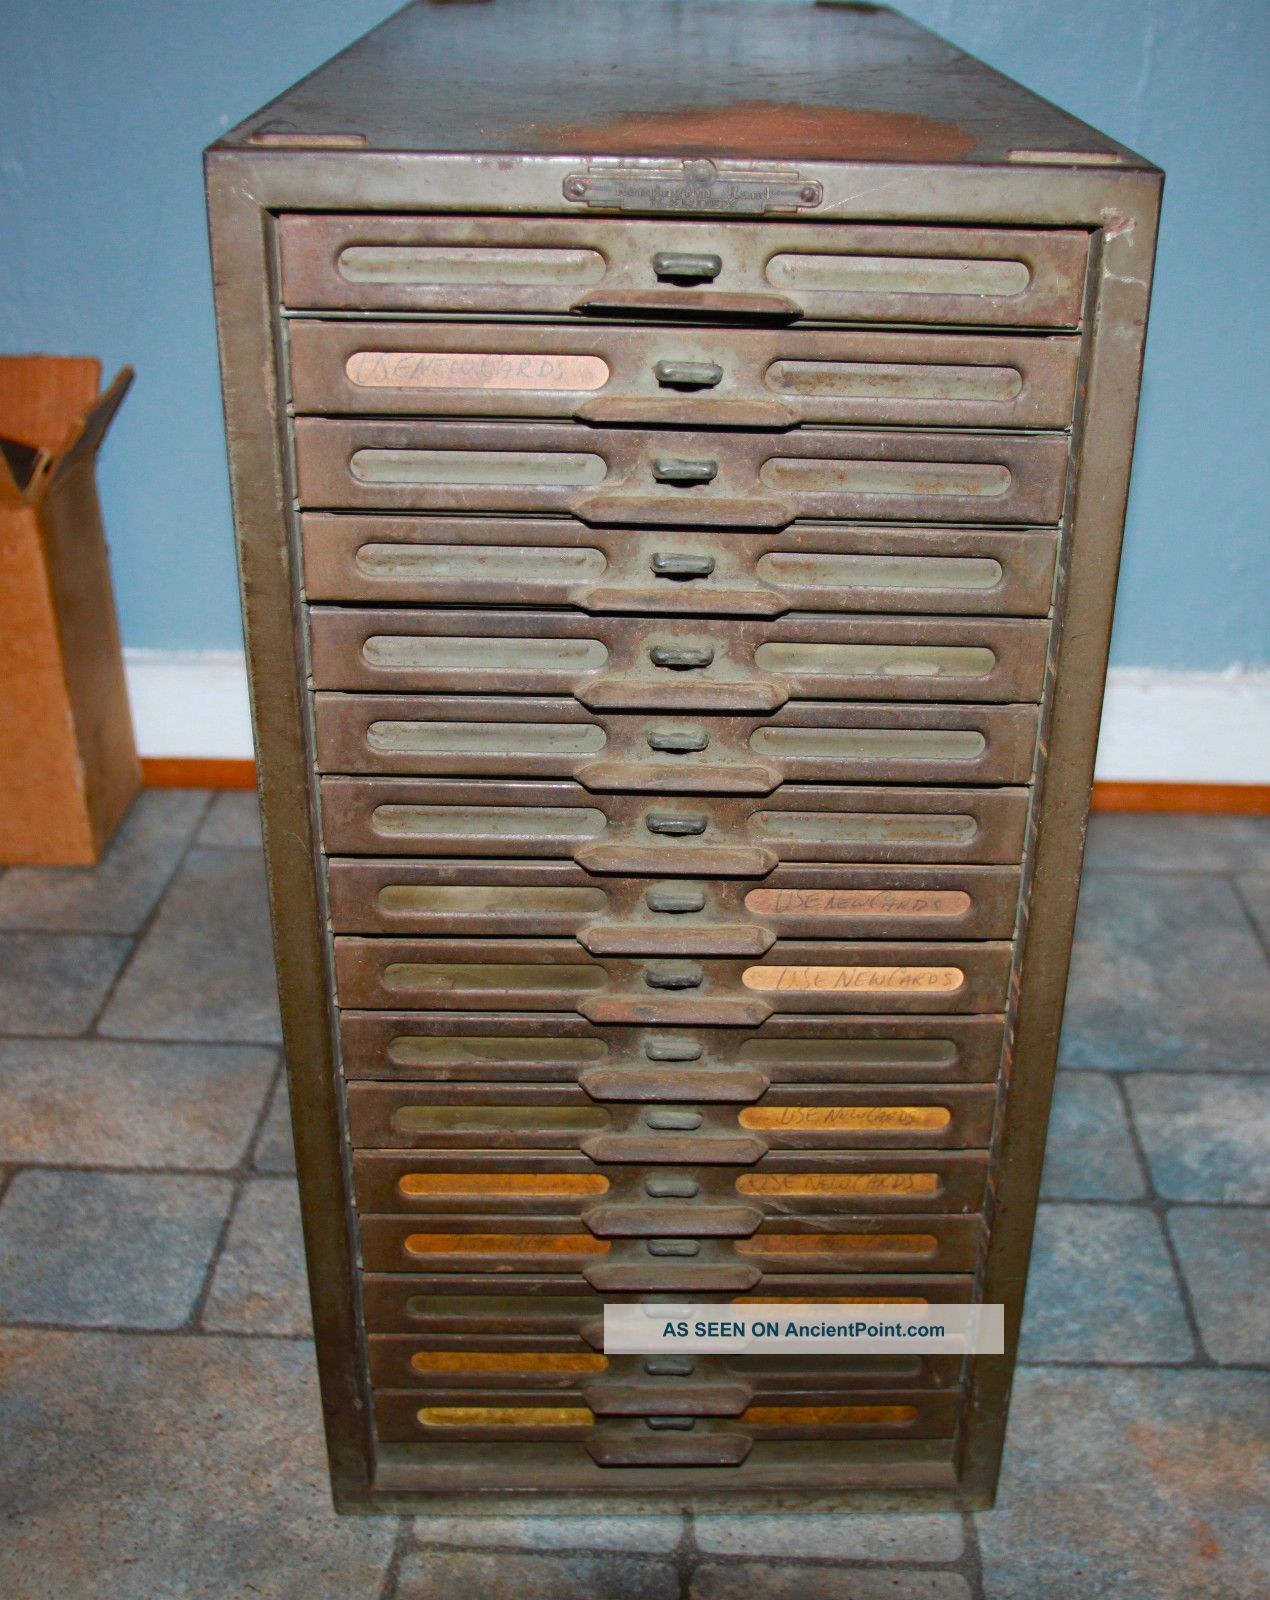 Vintage Industrial Remington Rand Kardex Metal File Cabinet 16 Drawers  Factory 1900-1950 photo - Vintage Industrial Remington Rand Kardex Metal File Cabinet 16